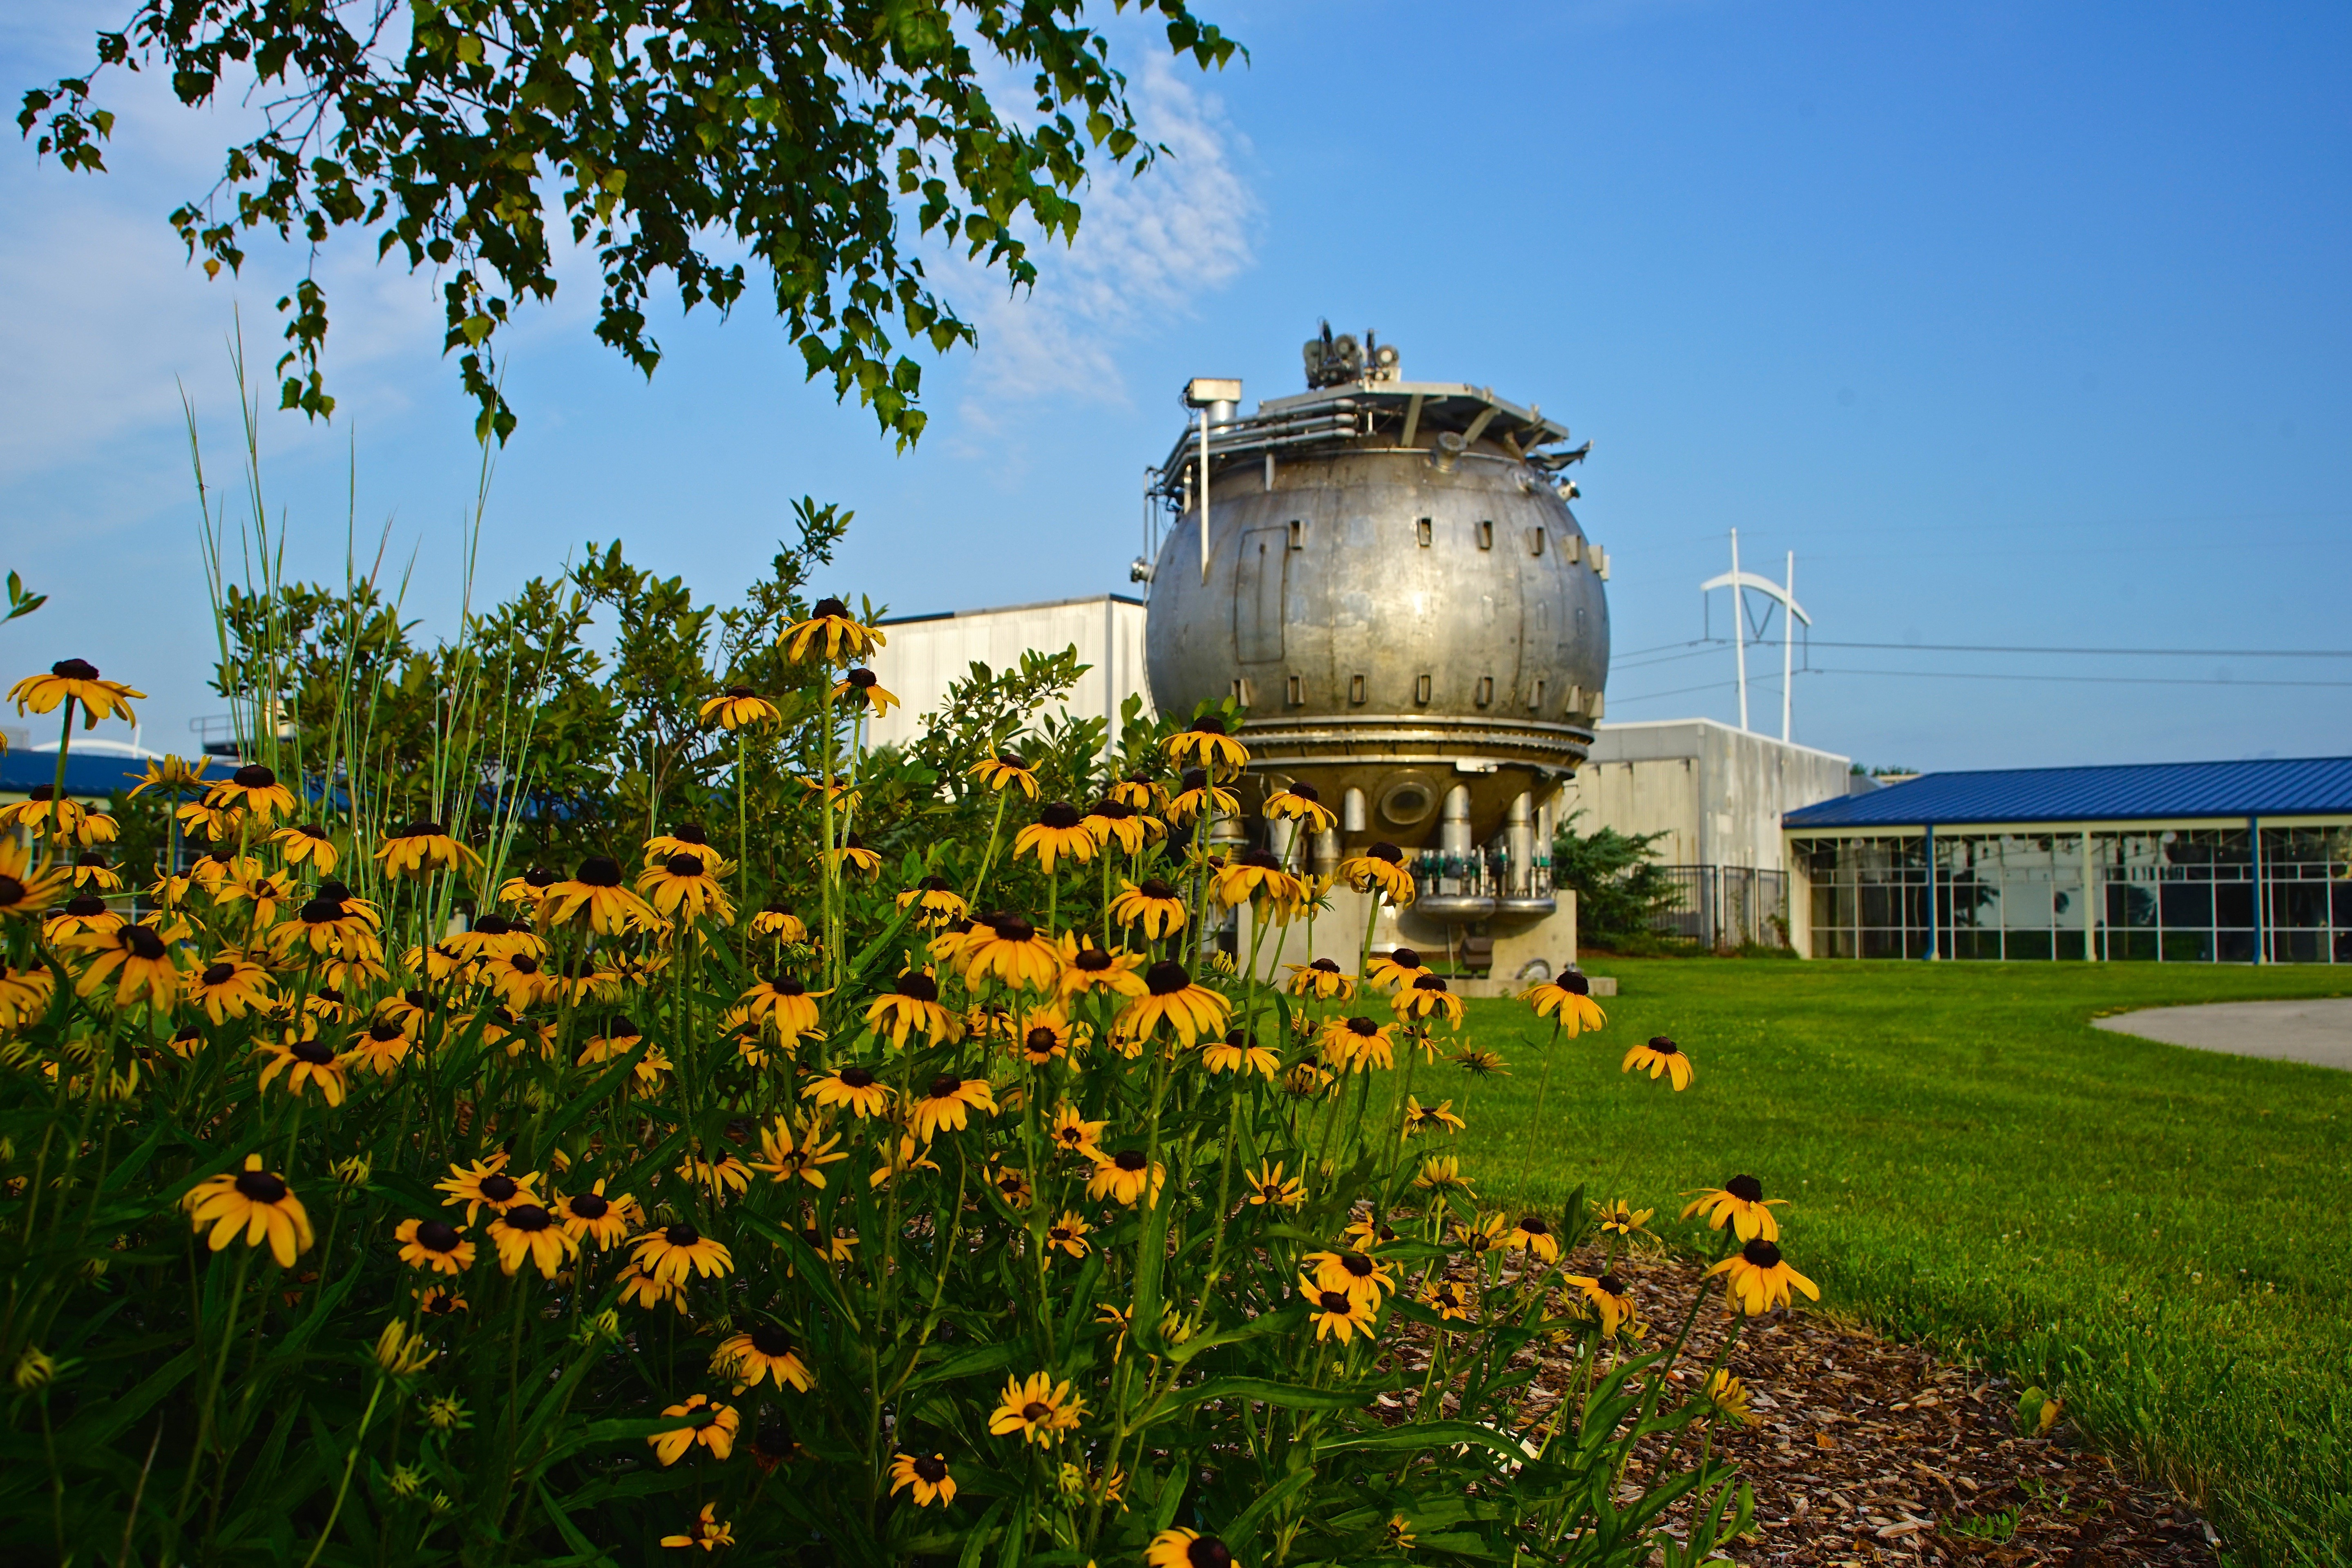 The 15-Foot Bubble Chamber located in SiDet's courtyard is possibly the largest lawn ornament on Fermilab's 6,800 acres — a marvel to behold, especially when set off by brown-eyed susans. Photo: Leticia Shaddix